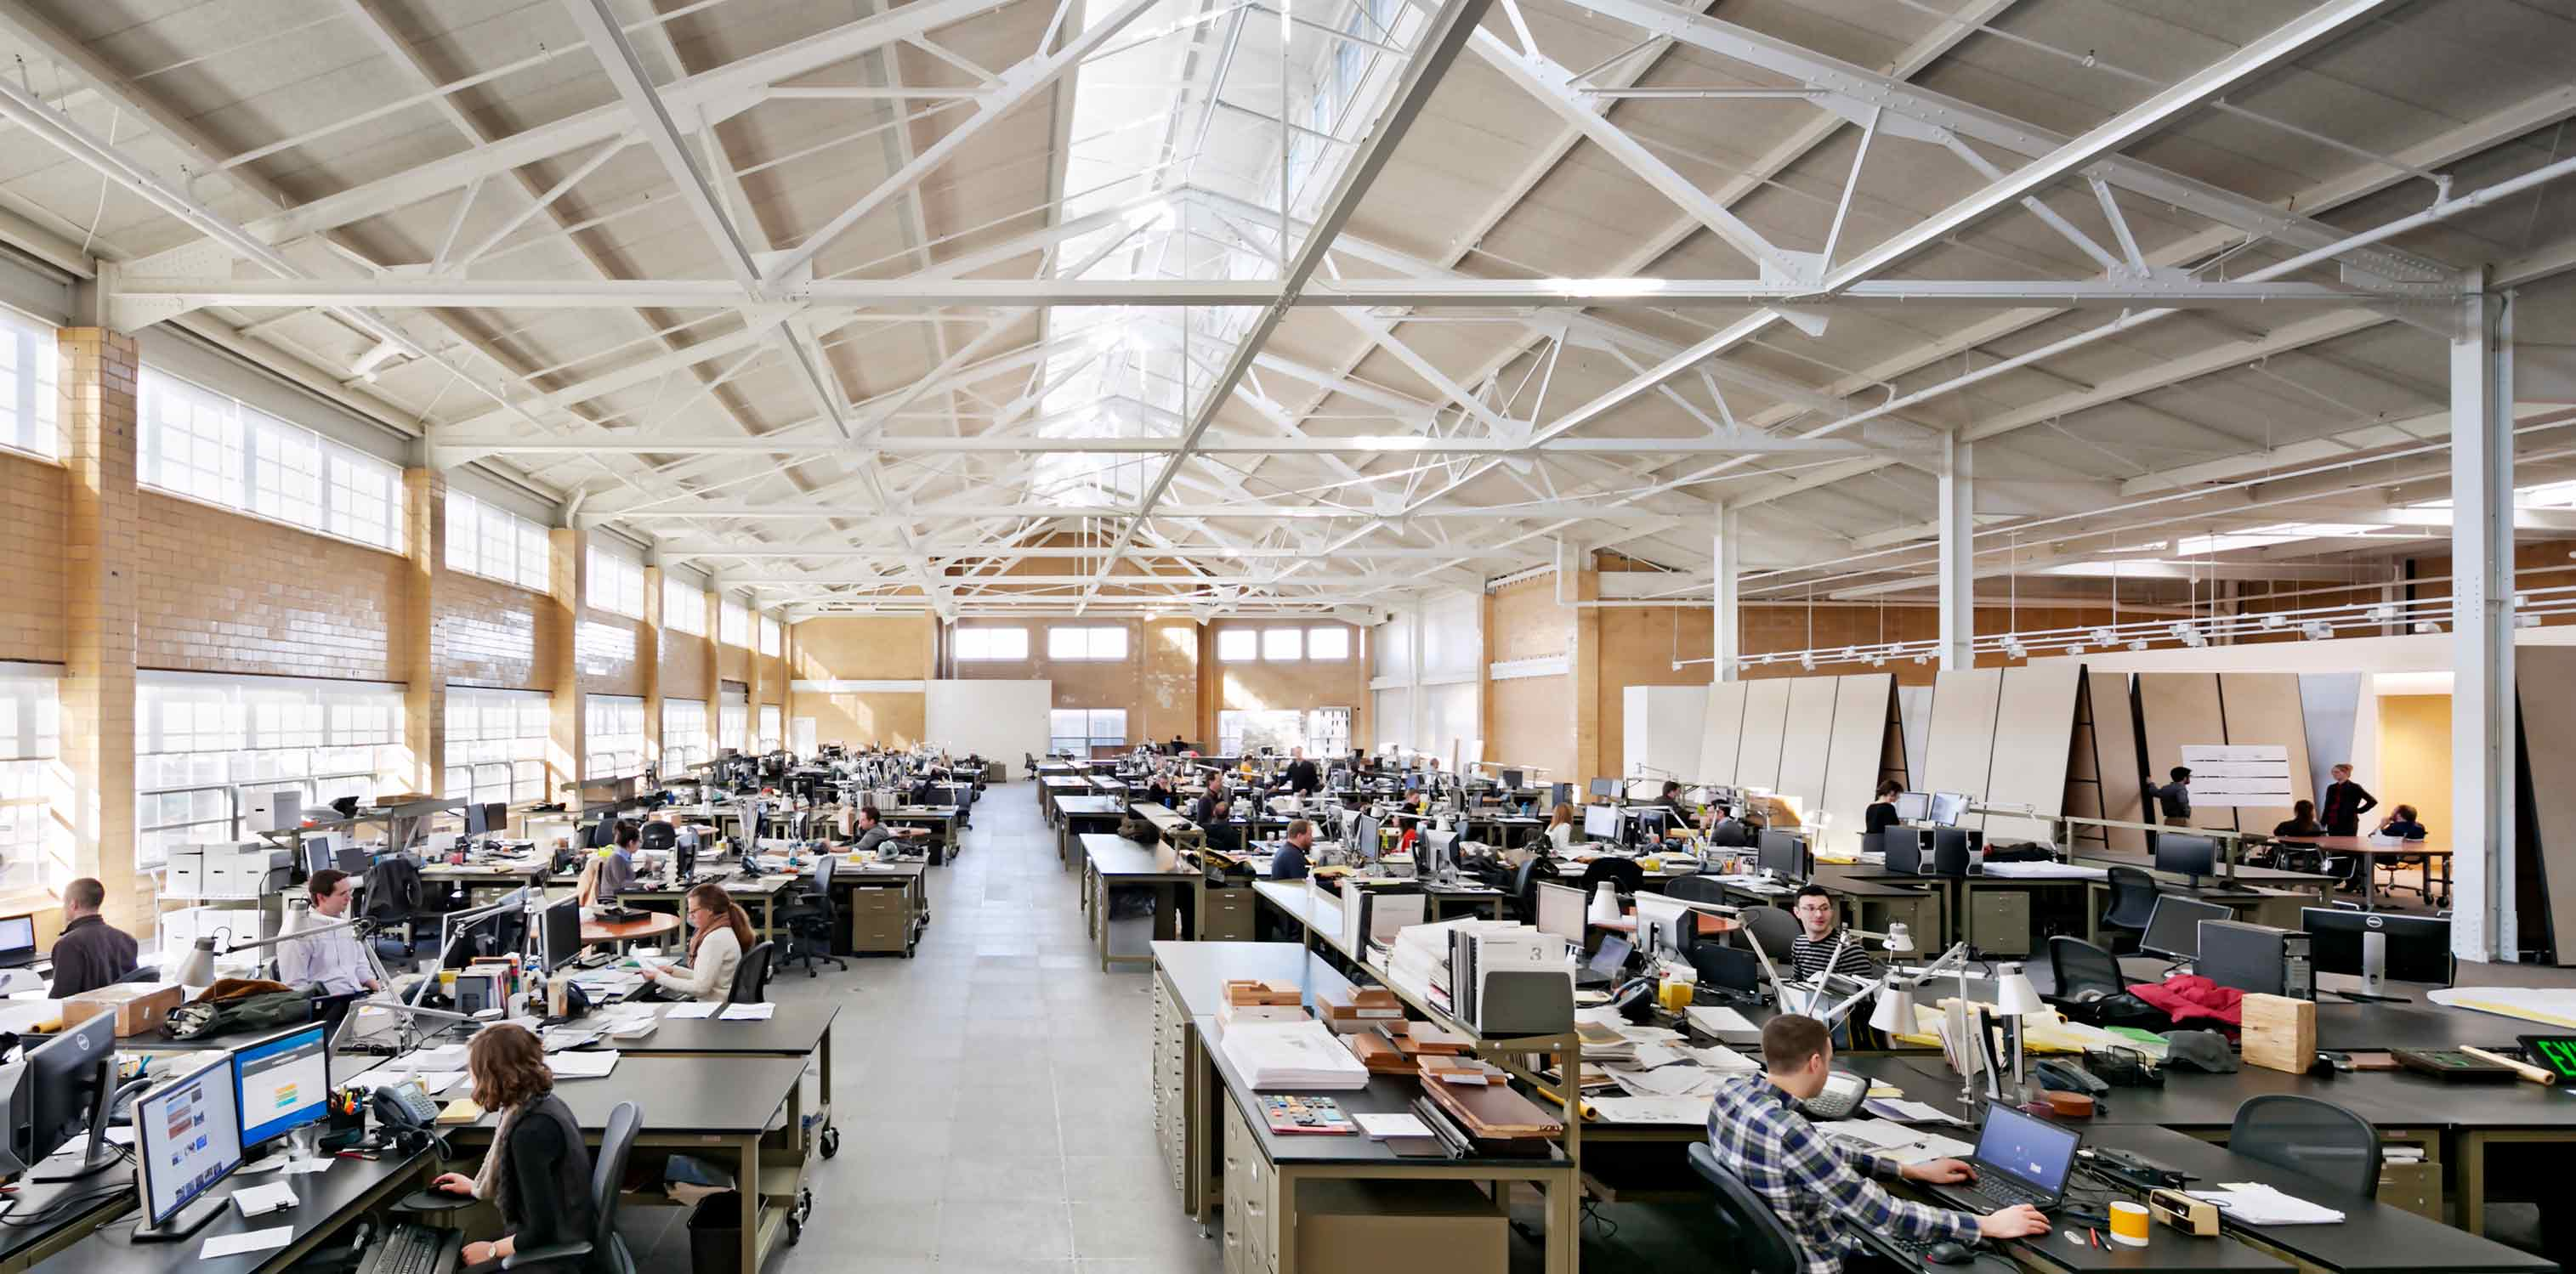 <p>Our large, daylit studio is designed to support our flexible, collaborative, and transdisciplinary culture.<br> <br /><small>©Michael Moran</small></p>